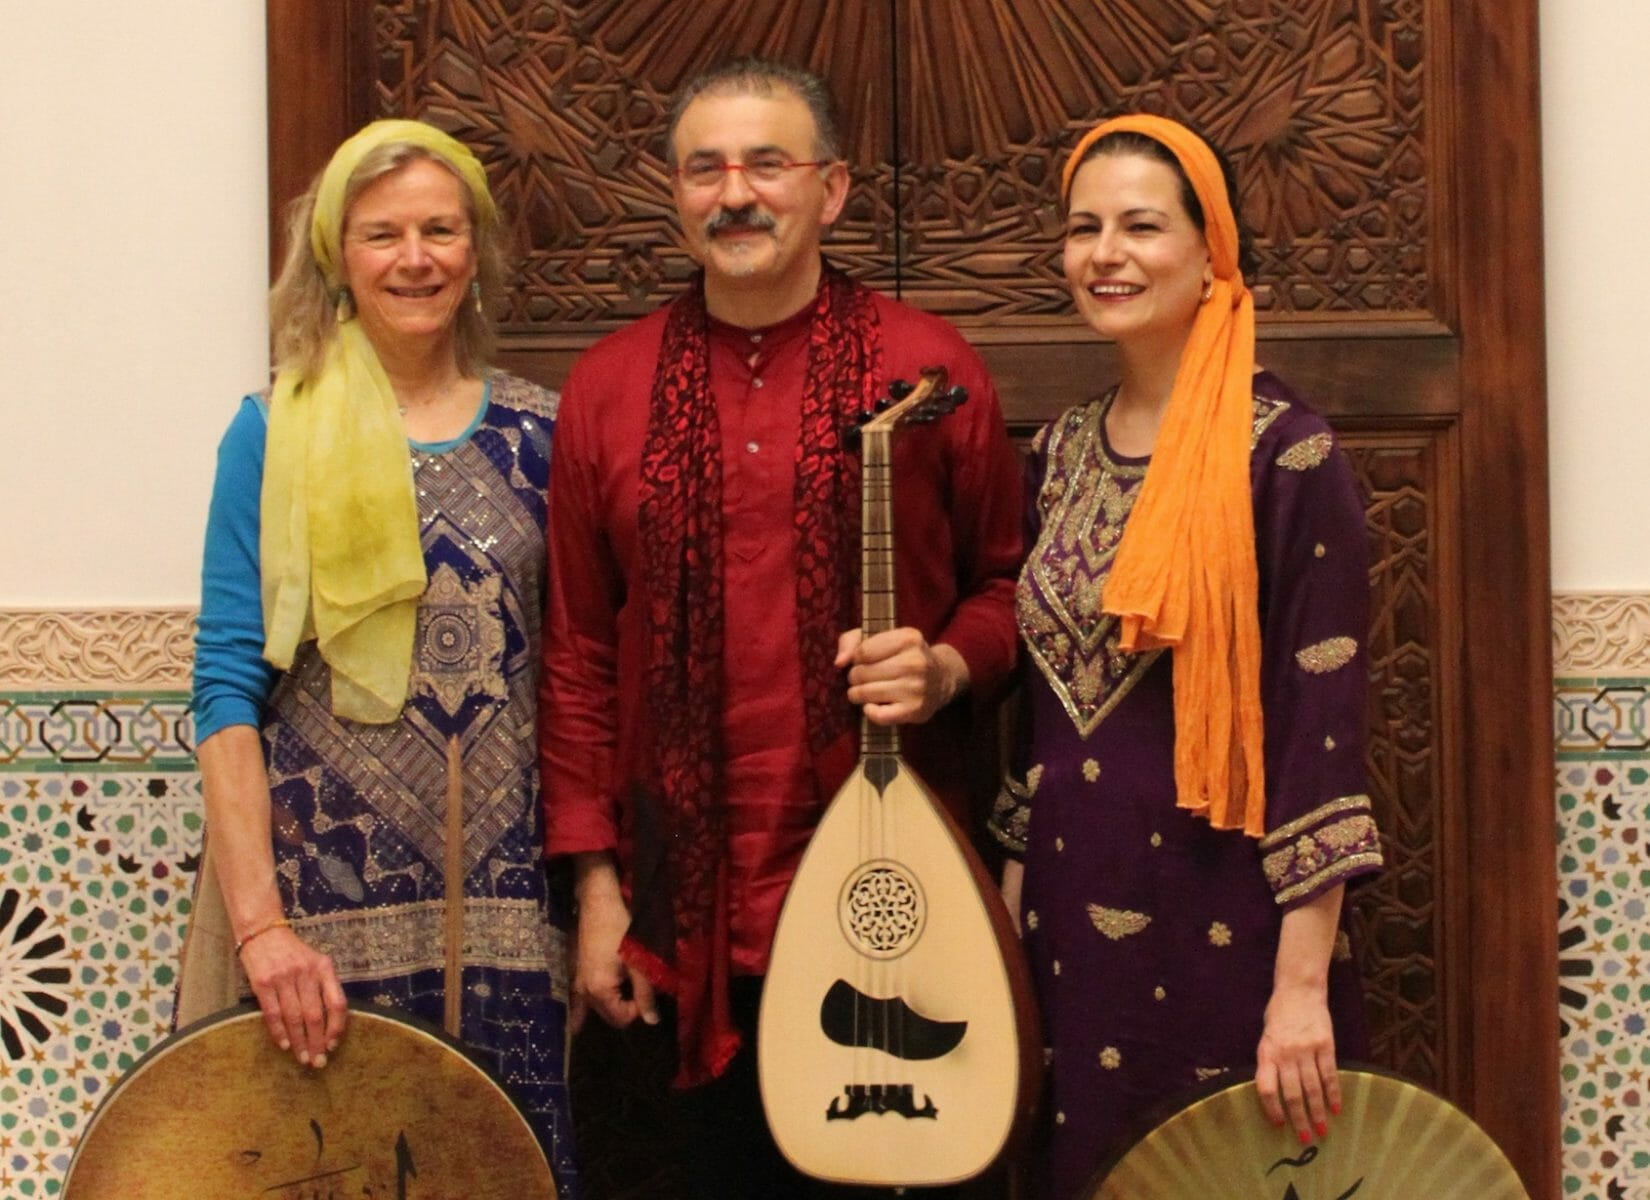 Sufi Songs of Love together with Drum & Whirling Workshop at the Sivananda Yoga Ranch